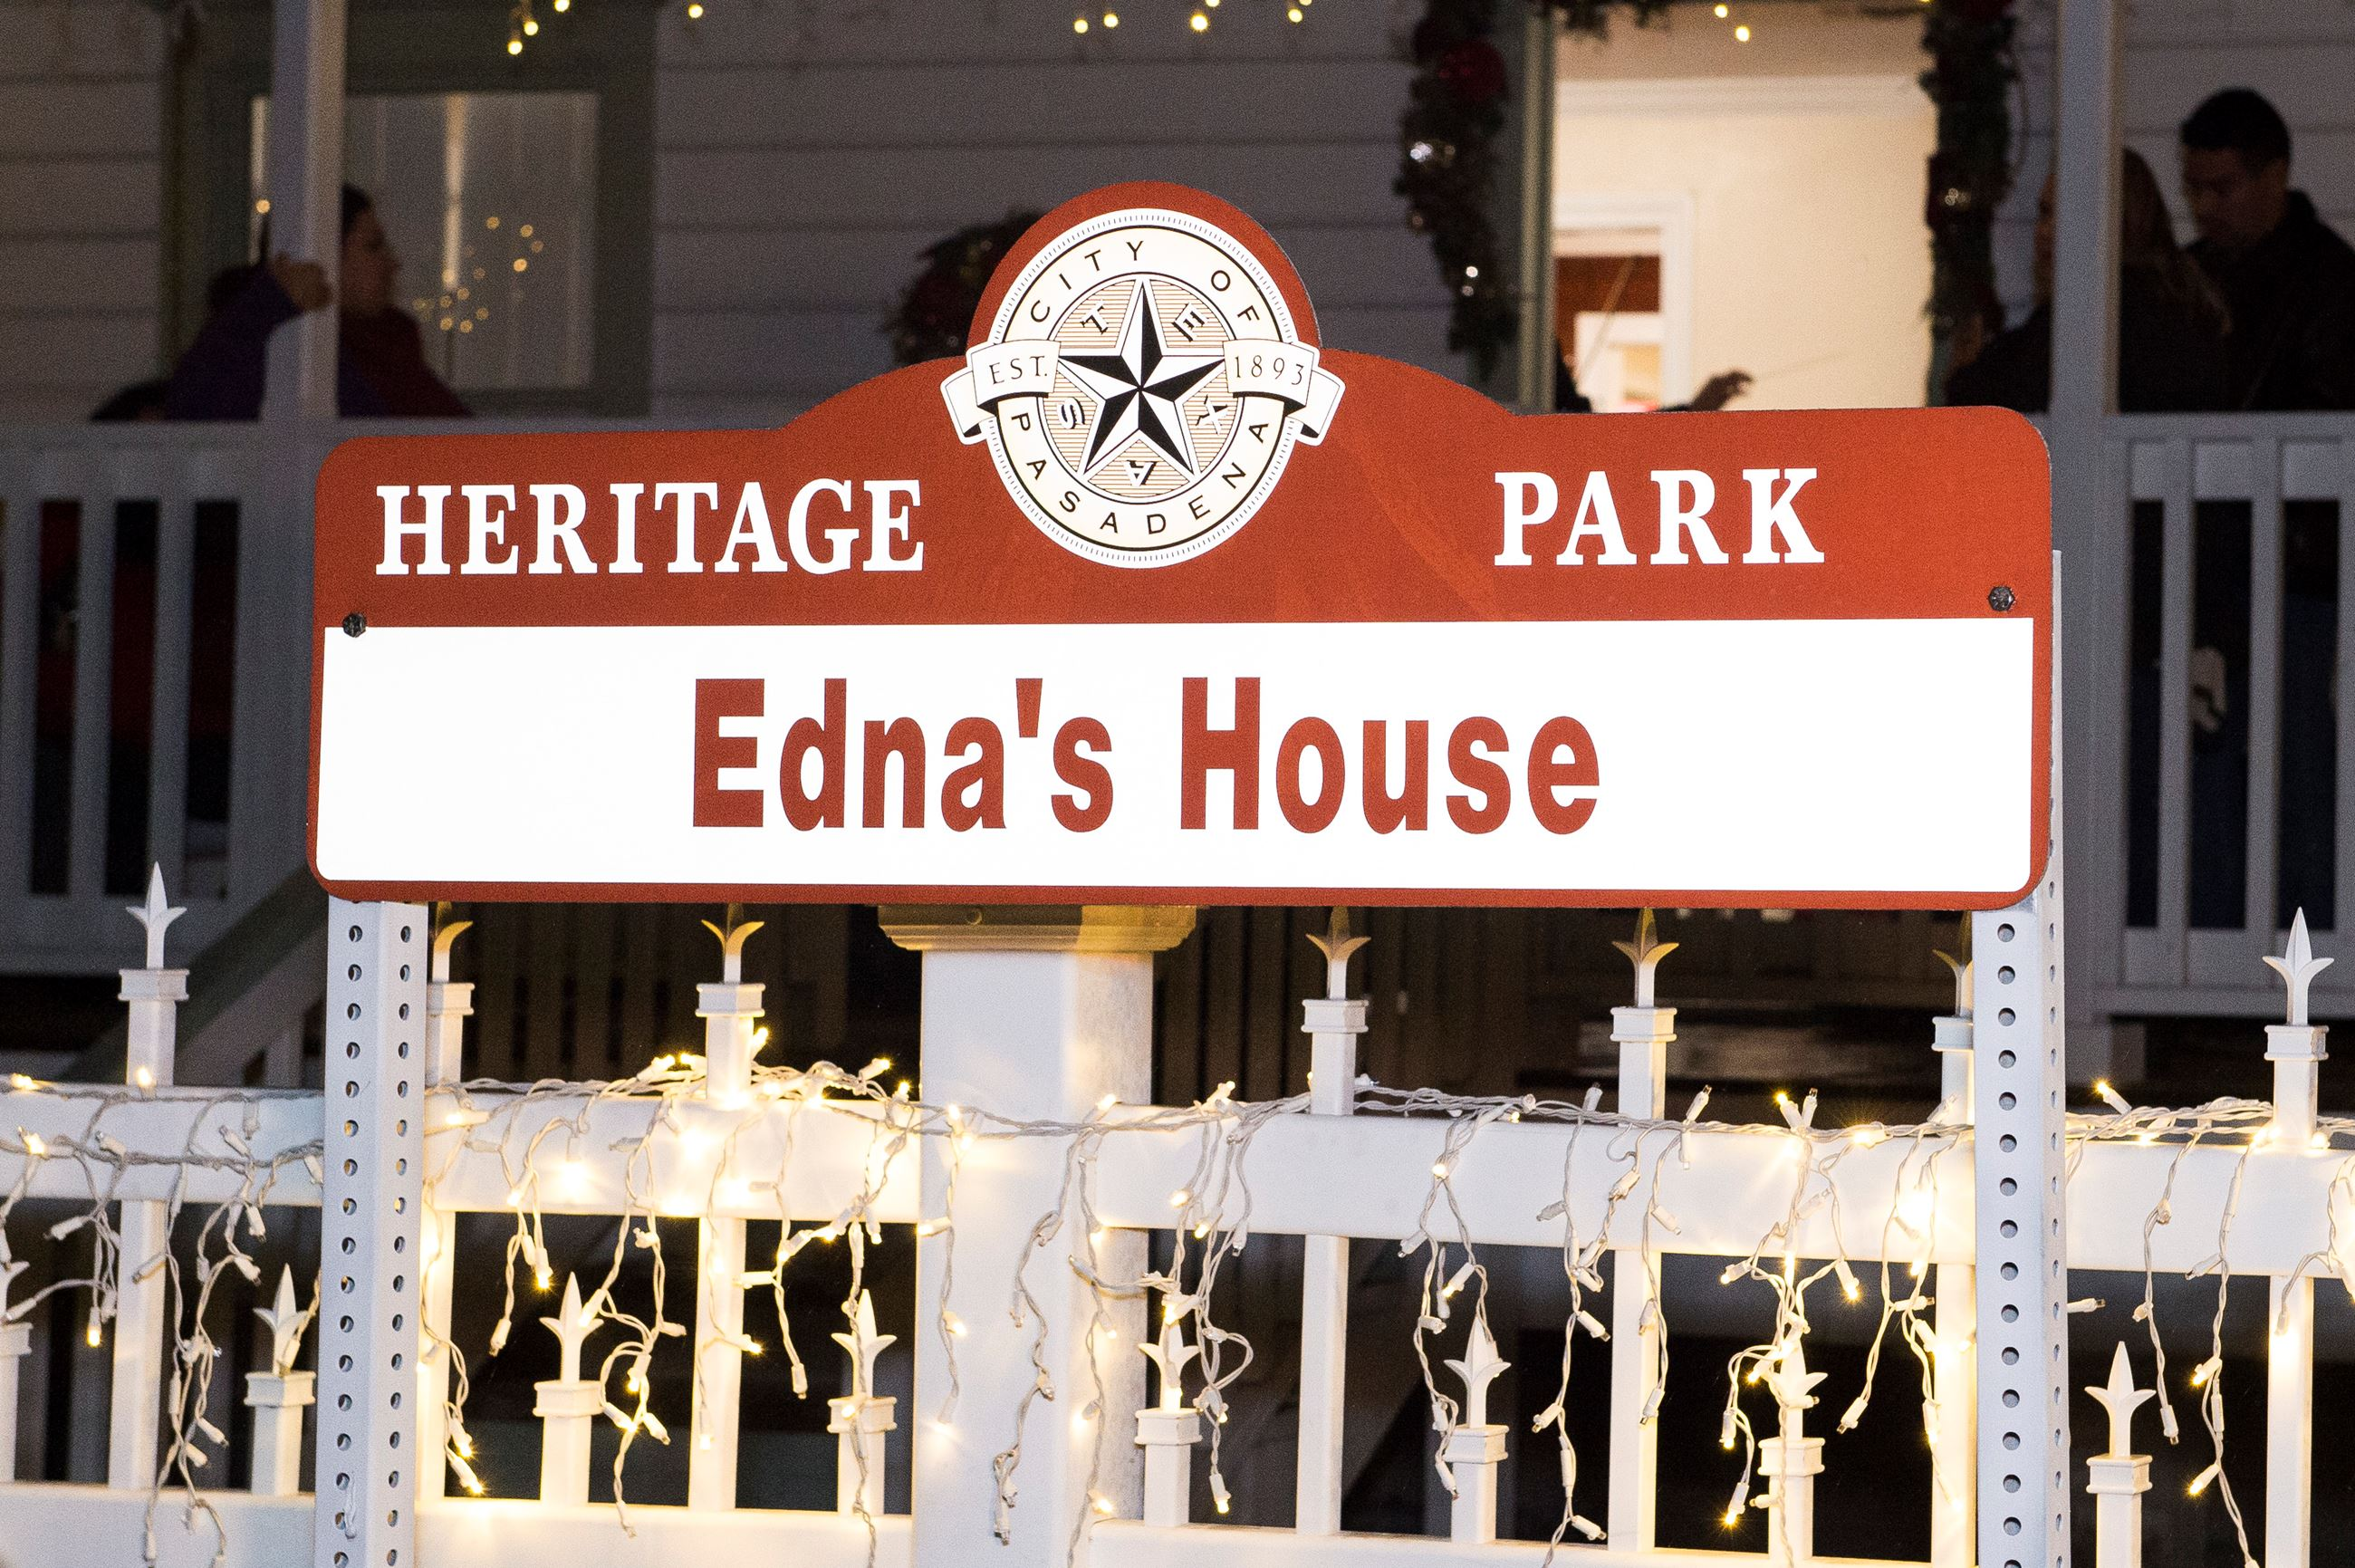 Sign for Edna's House at the Heritage Park and Museum